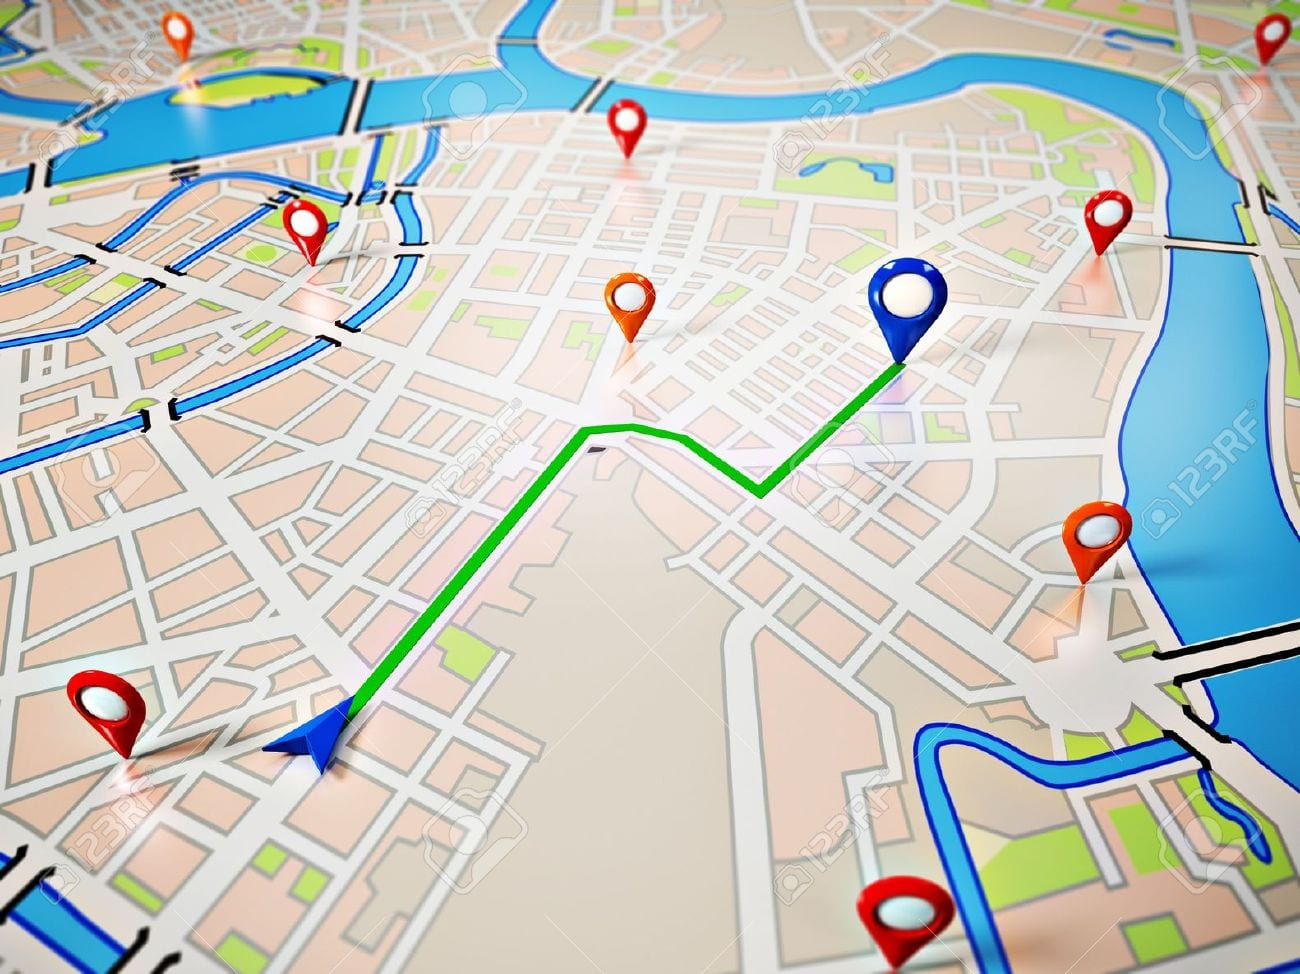 Track A Cell Phone Location By Number >> 5 Ways To Track A Cell Phone Location By Number